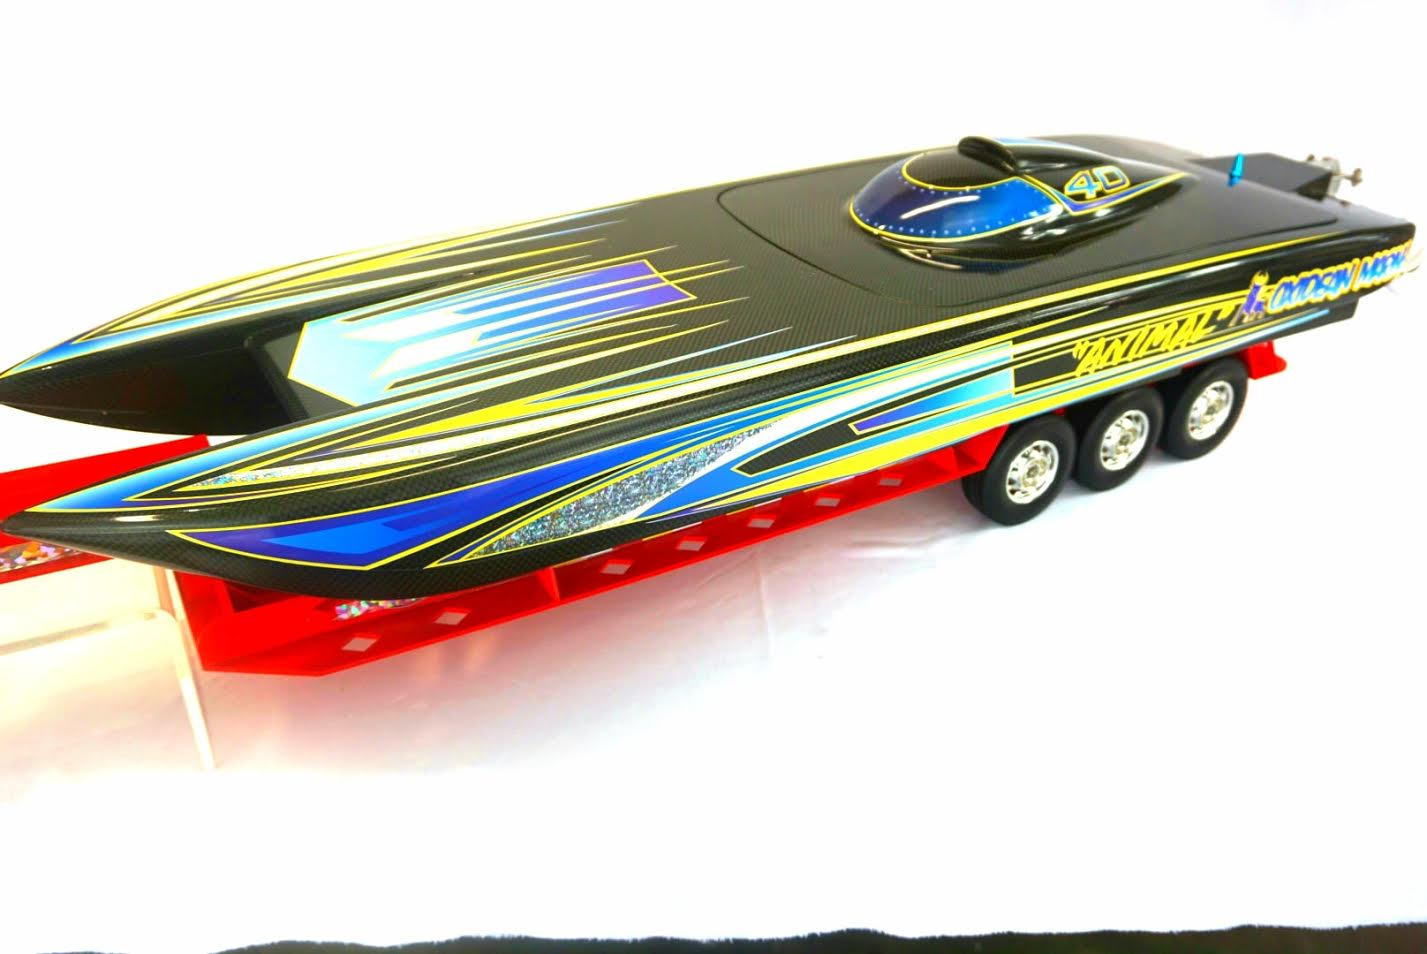 Oxidean Upgrades RC Catamaran Model and Graphics - Powerboat Nation